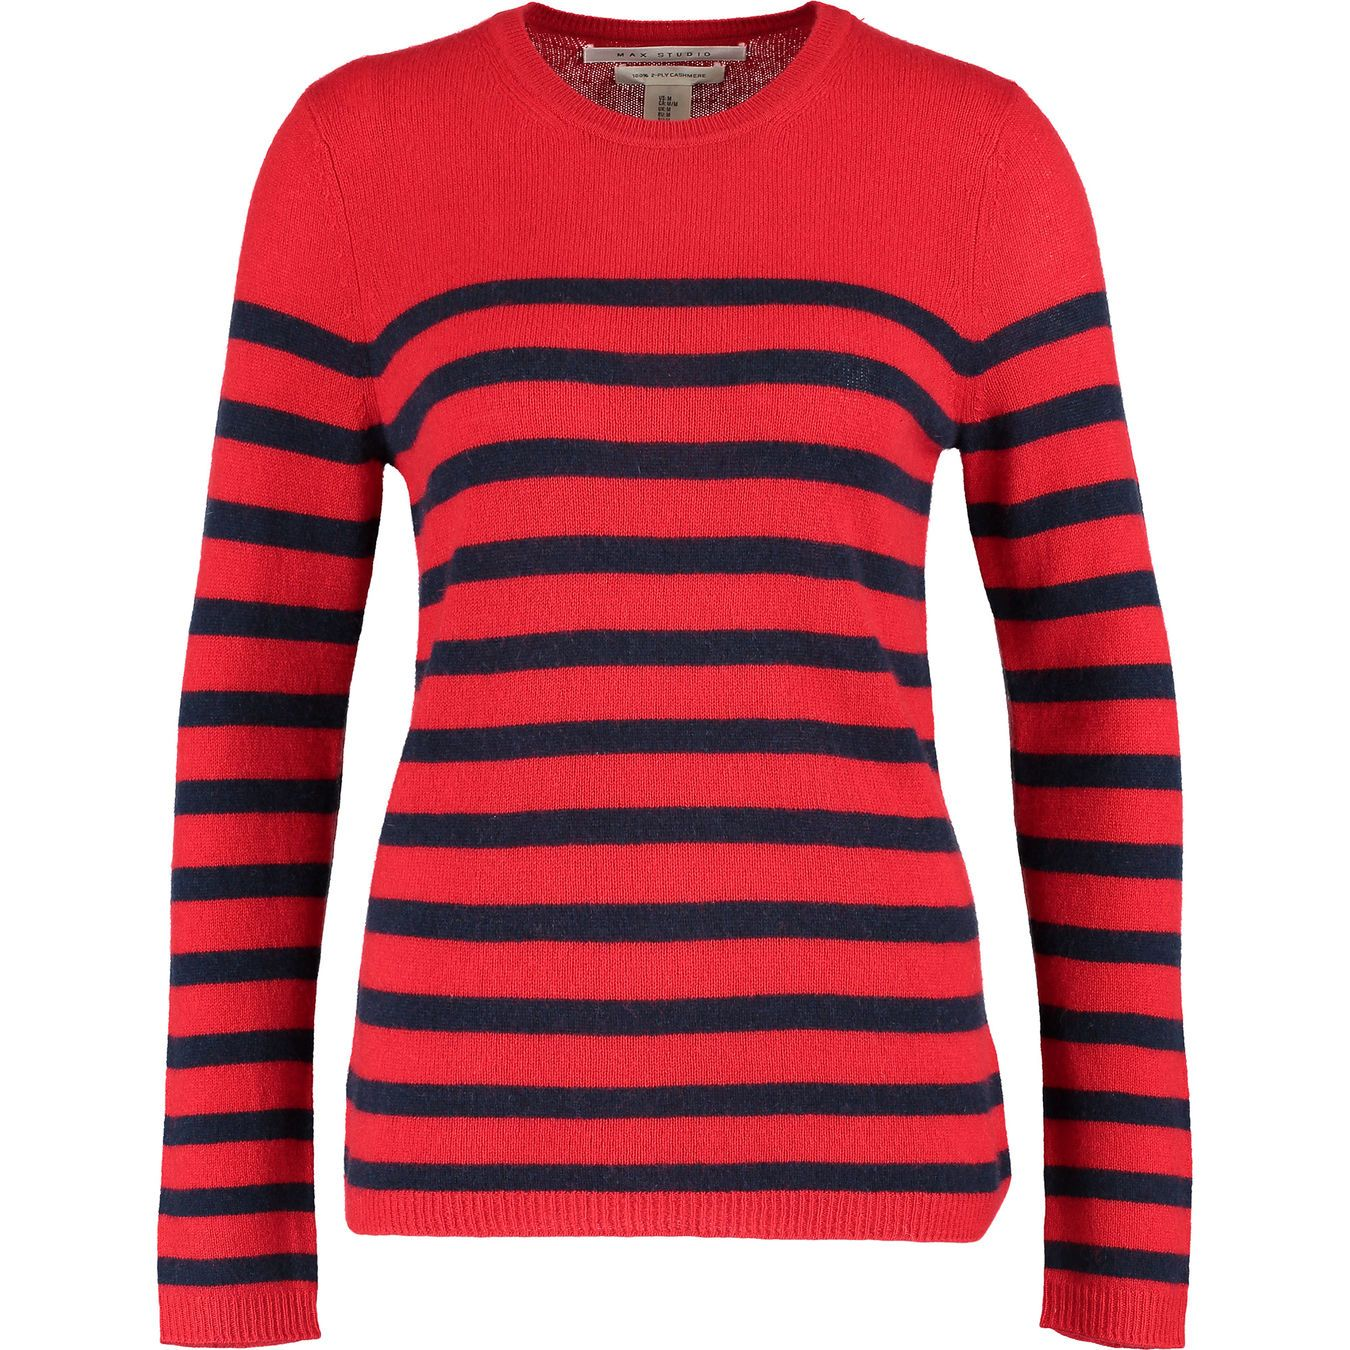 special promotion hot sale classic style of 2019 Red & Navy Striped Cashmere Jumper - Jumpers - Knitwear ...